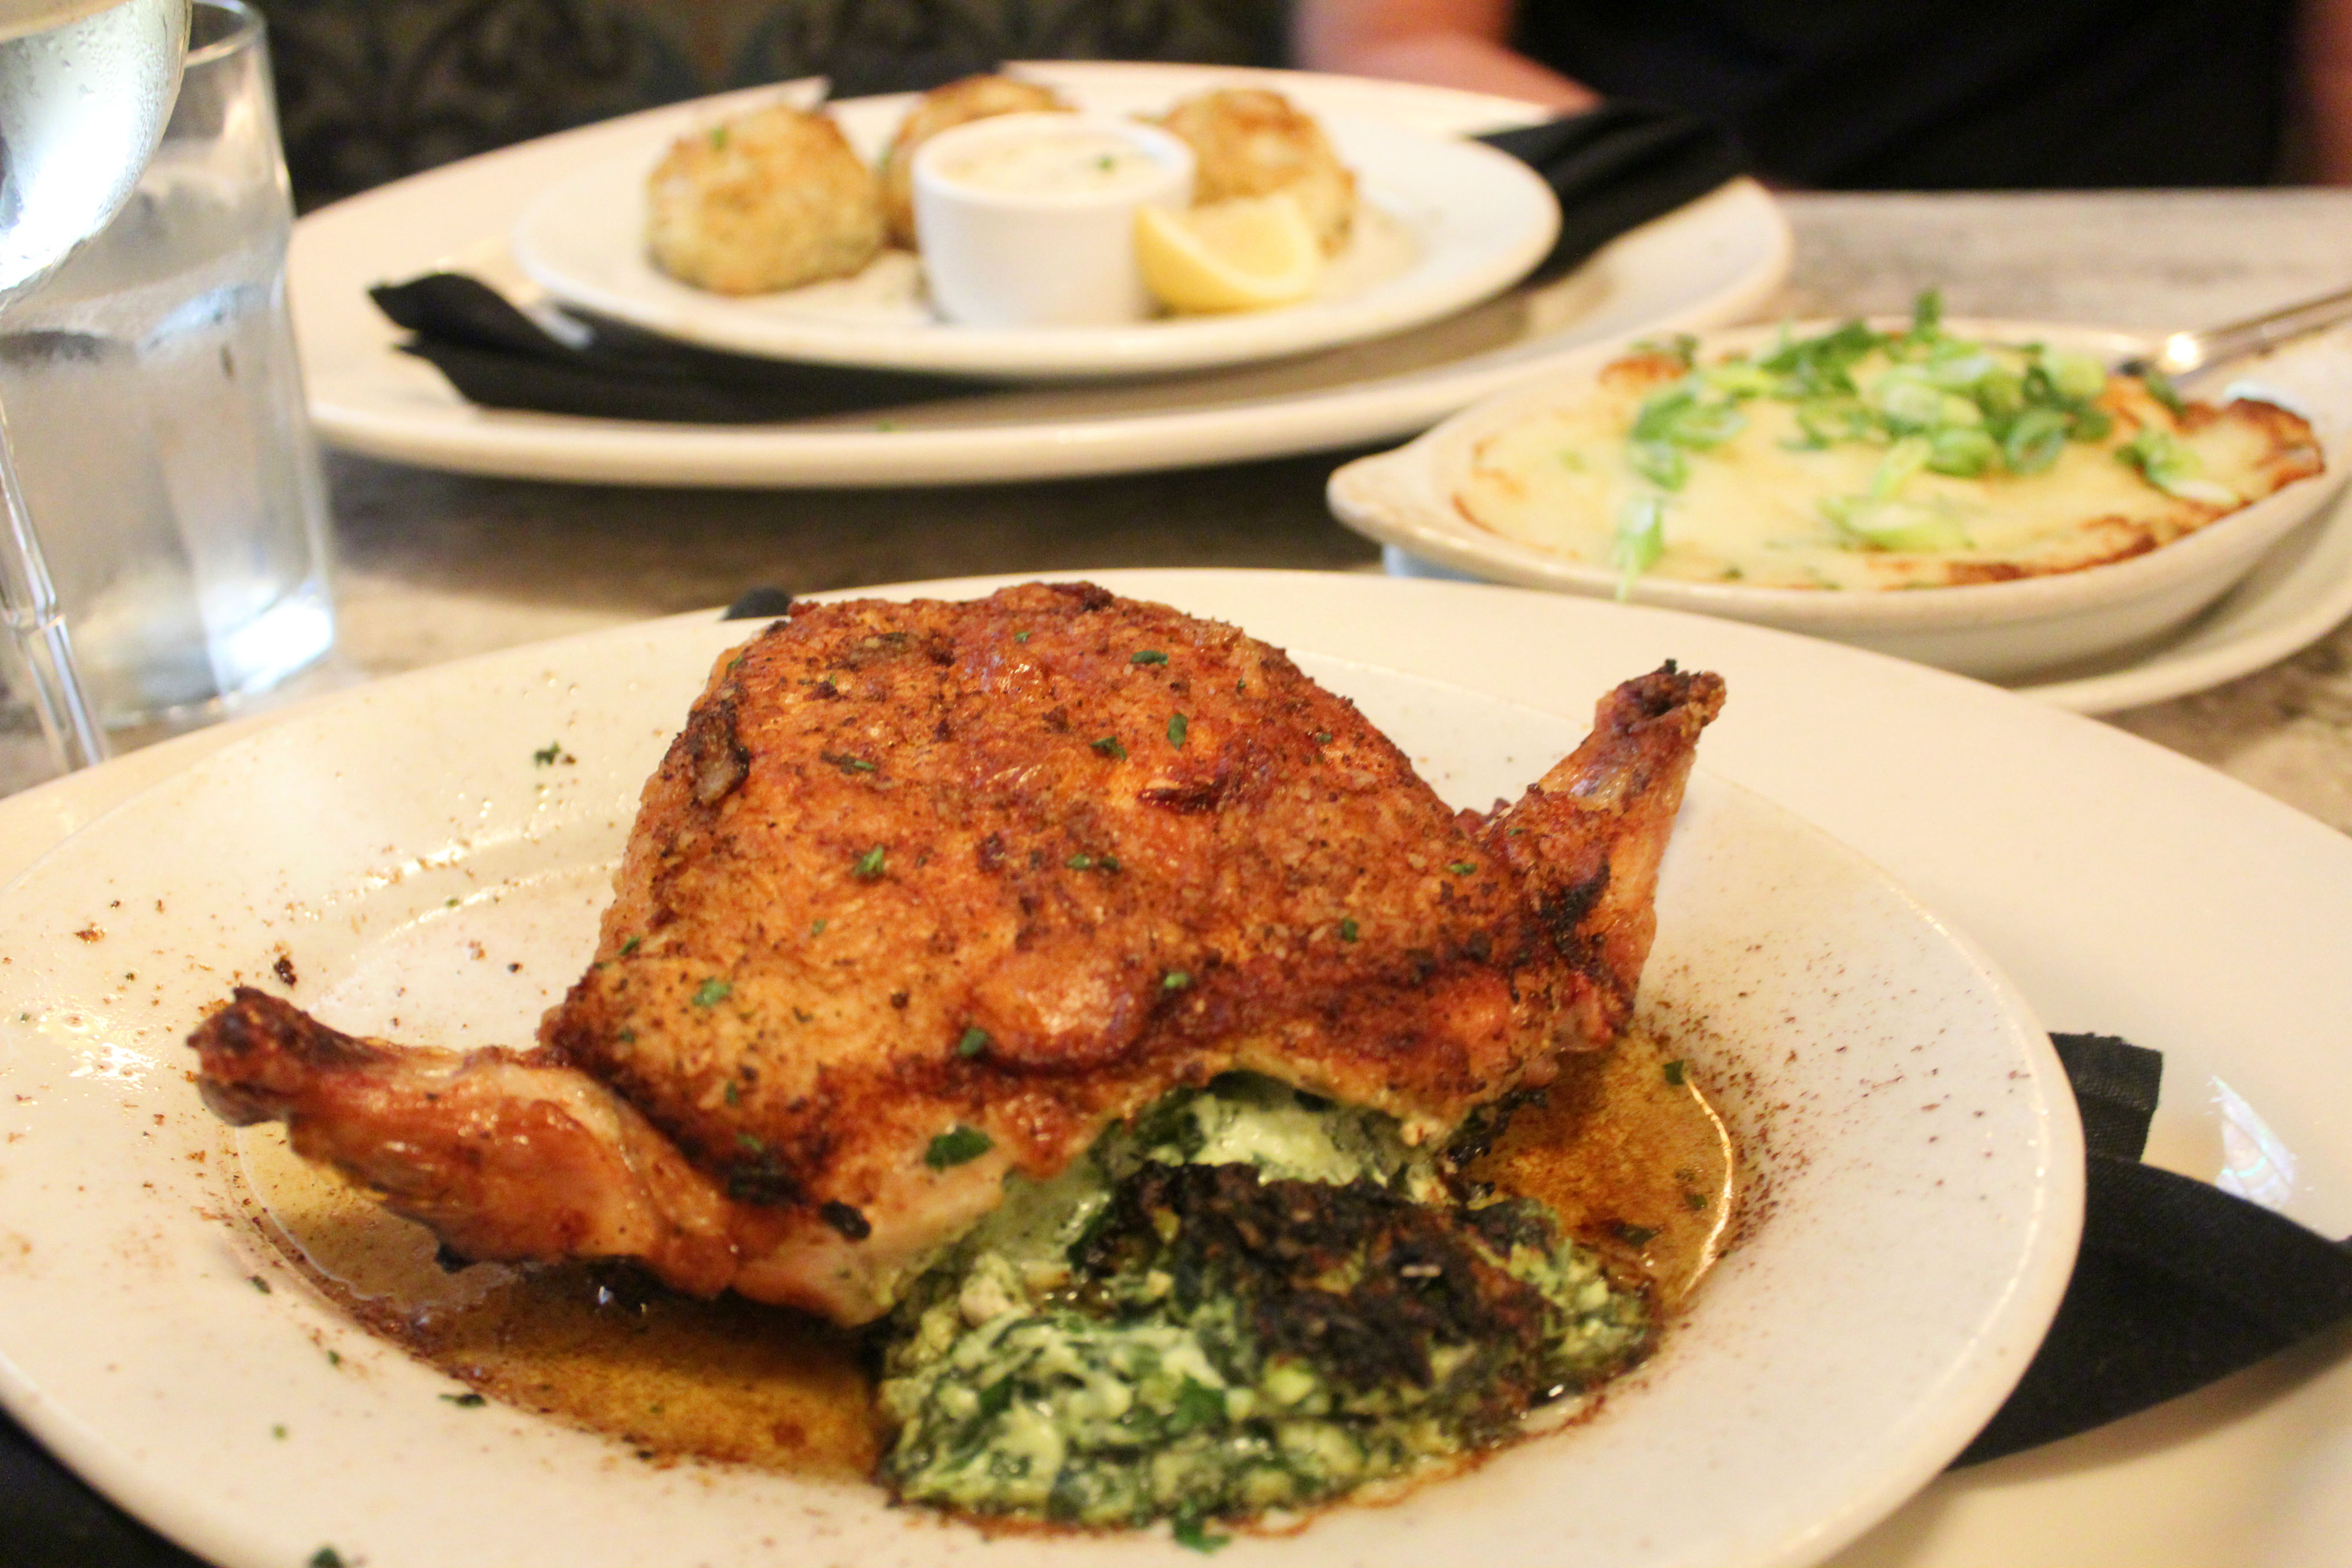 Marsha Brown's oven-roasted chicken stuffed with cheese and spinach, served with a side of baked potato souffle.{&nbsp;}(Image: Julie Gallagher)<p></p>